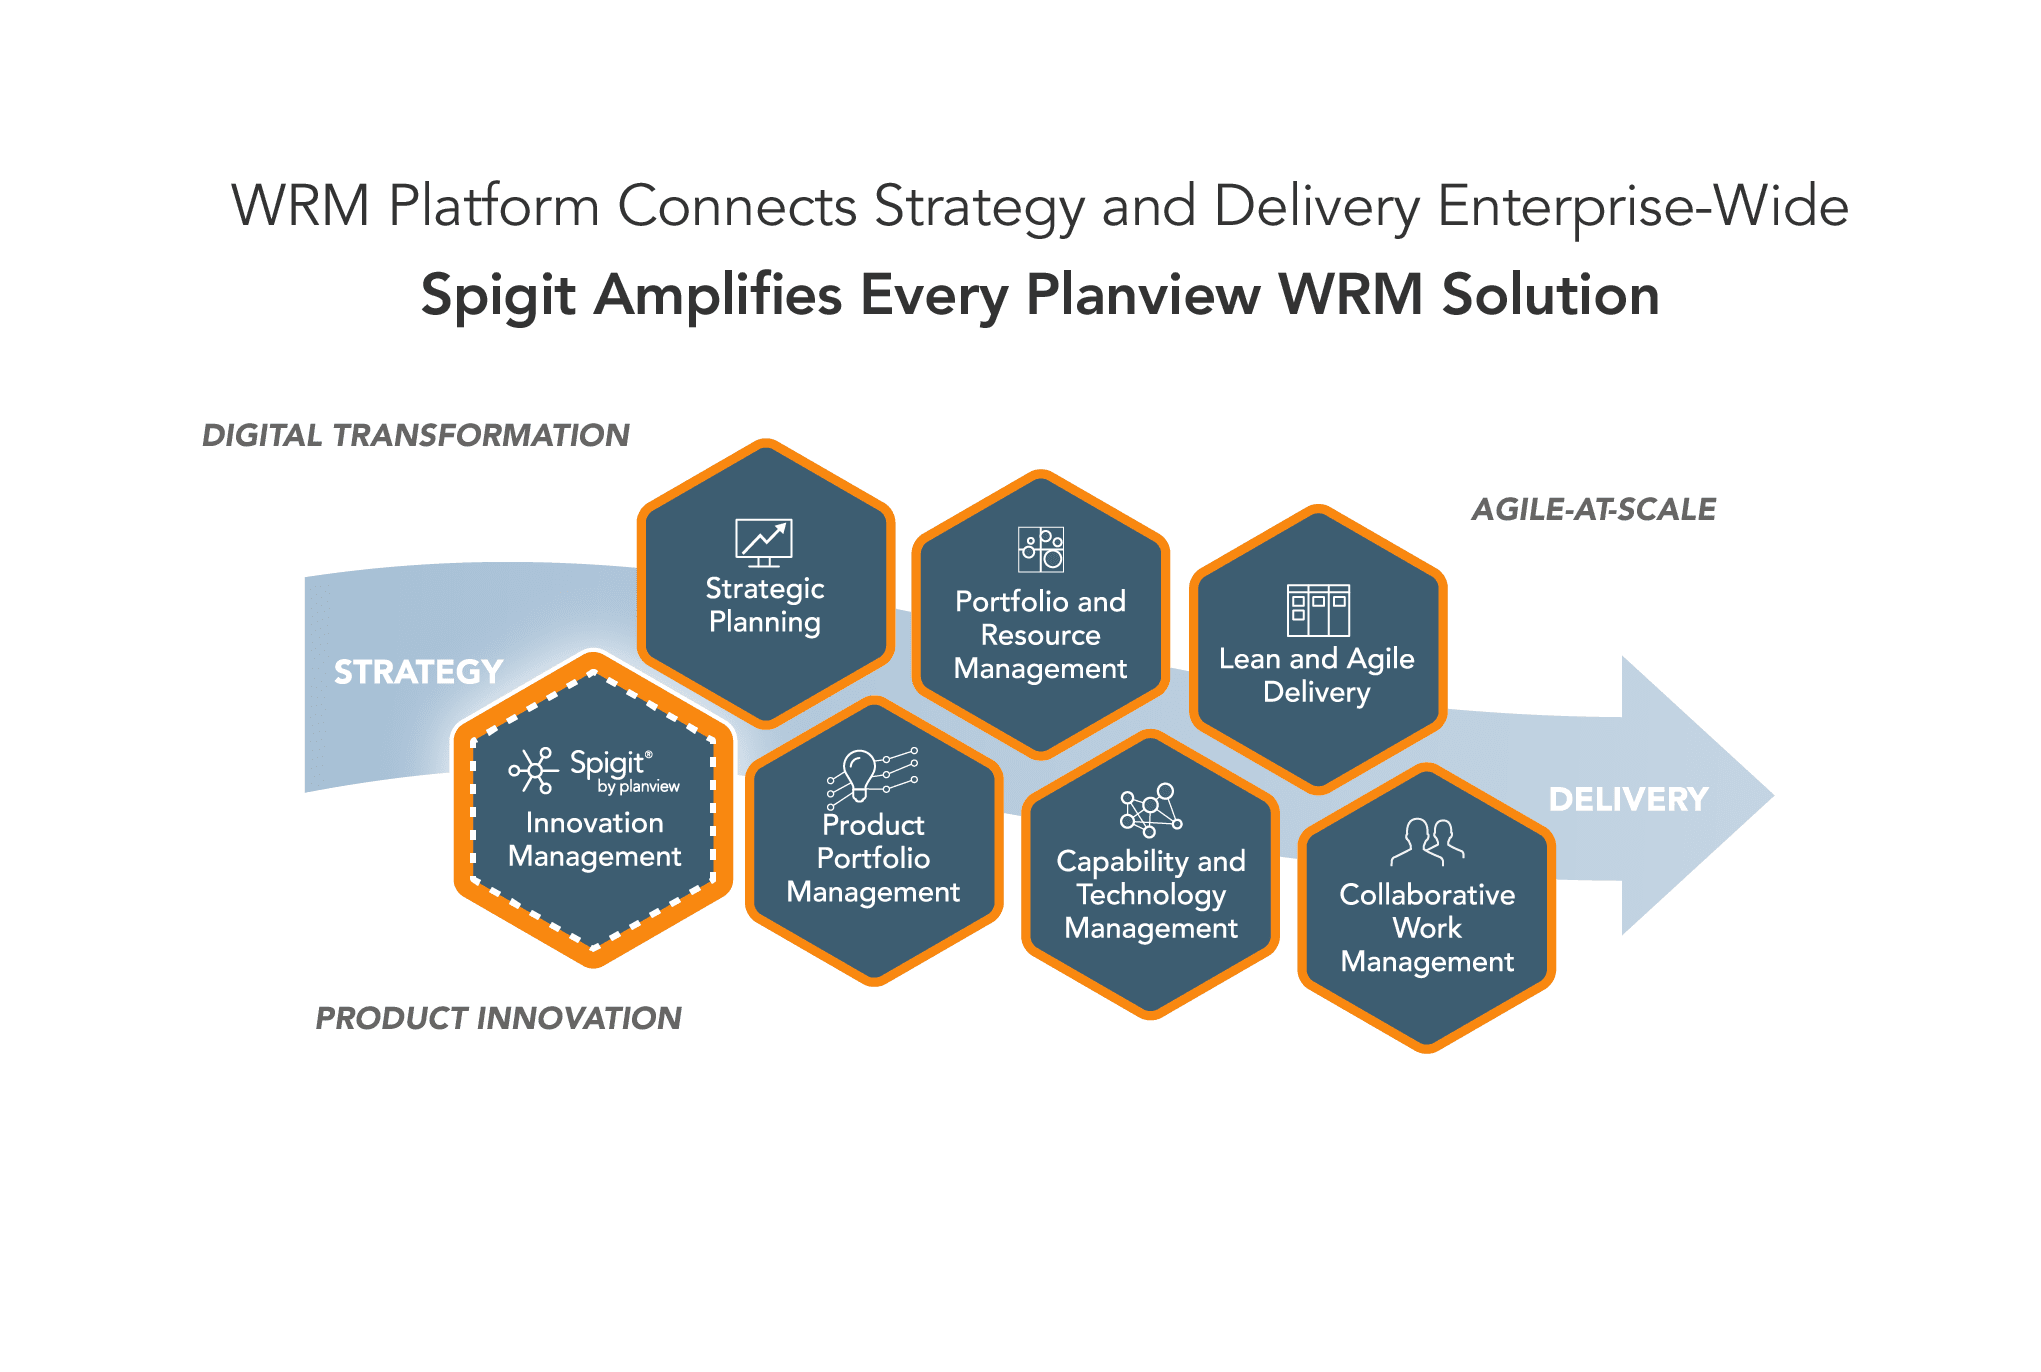 Spigit Amplifies Every Planview WRM Solution